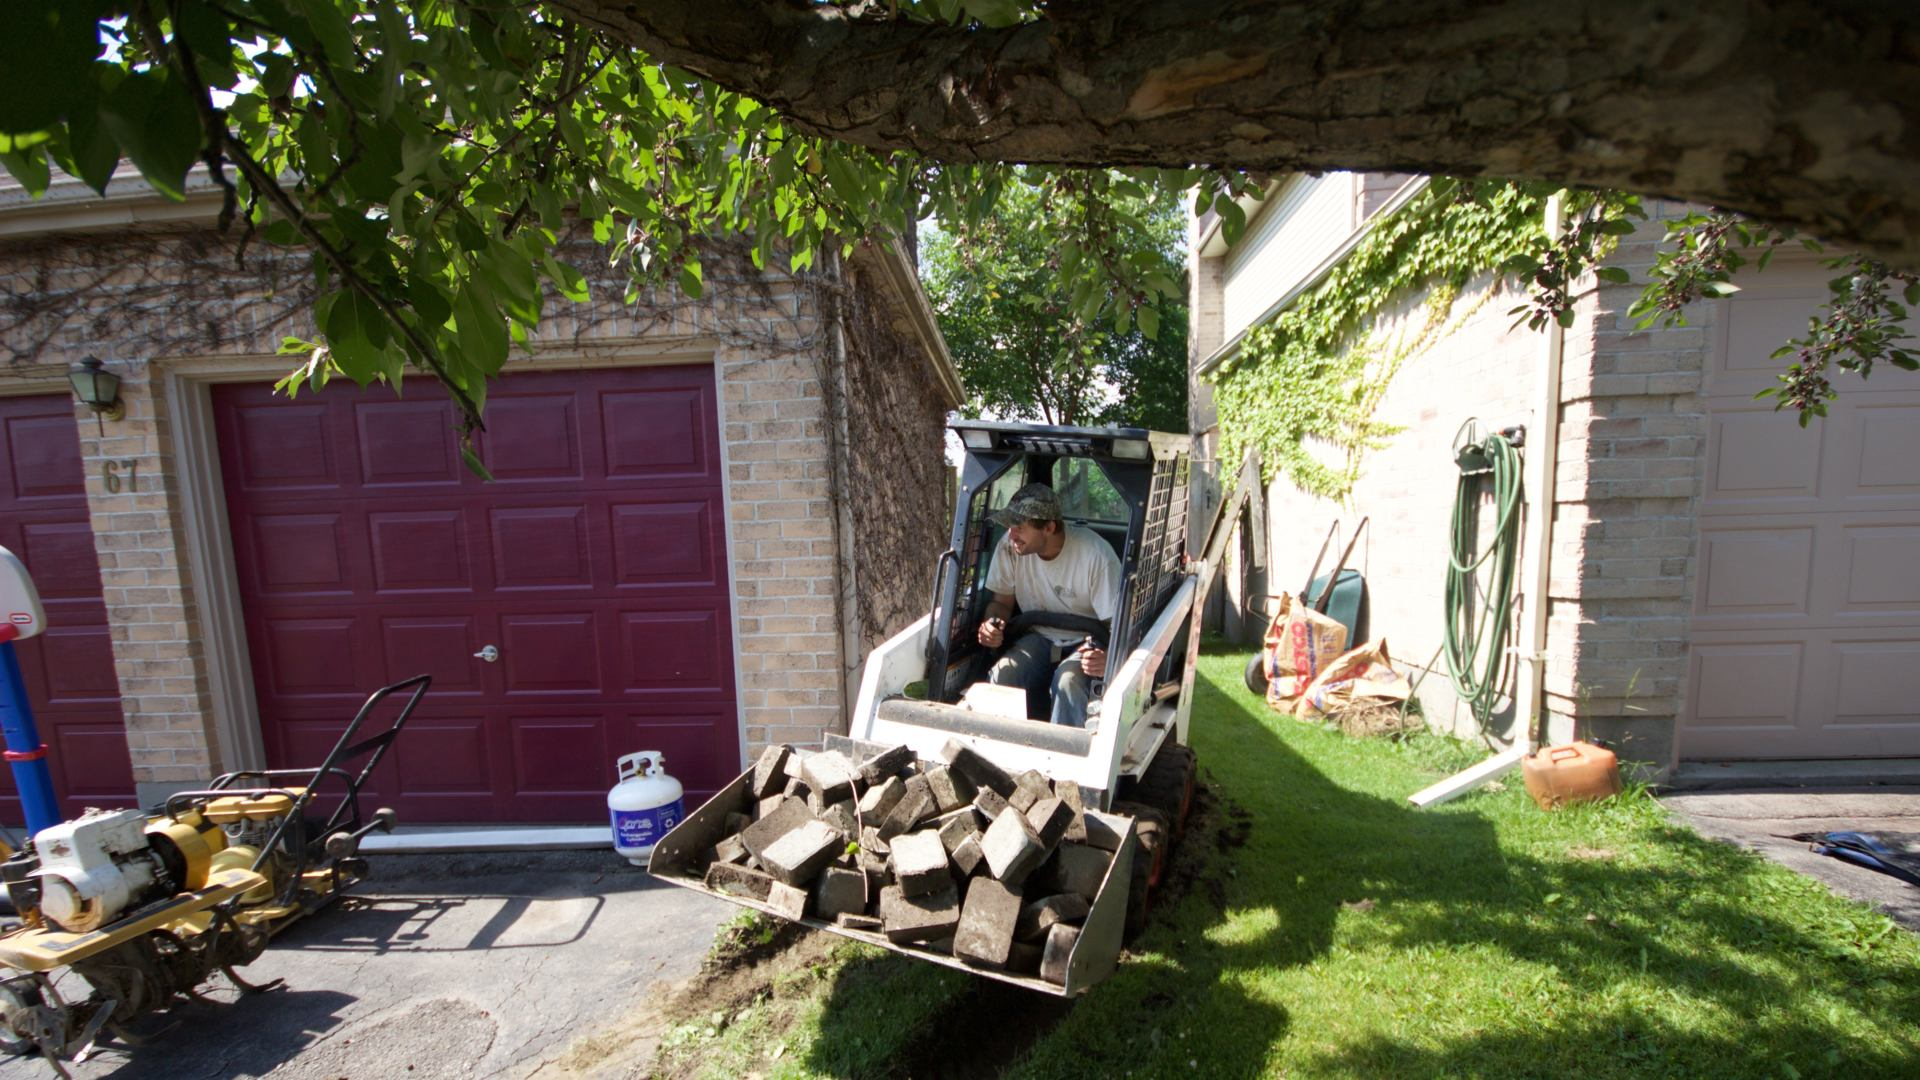 Removing old paving stones in preparation for a new backyard patio. A landscaping project in London Ontario.